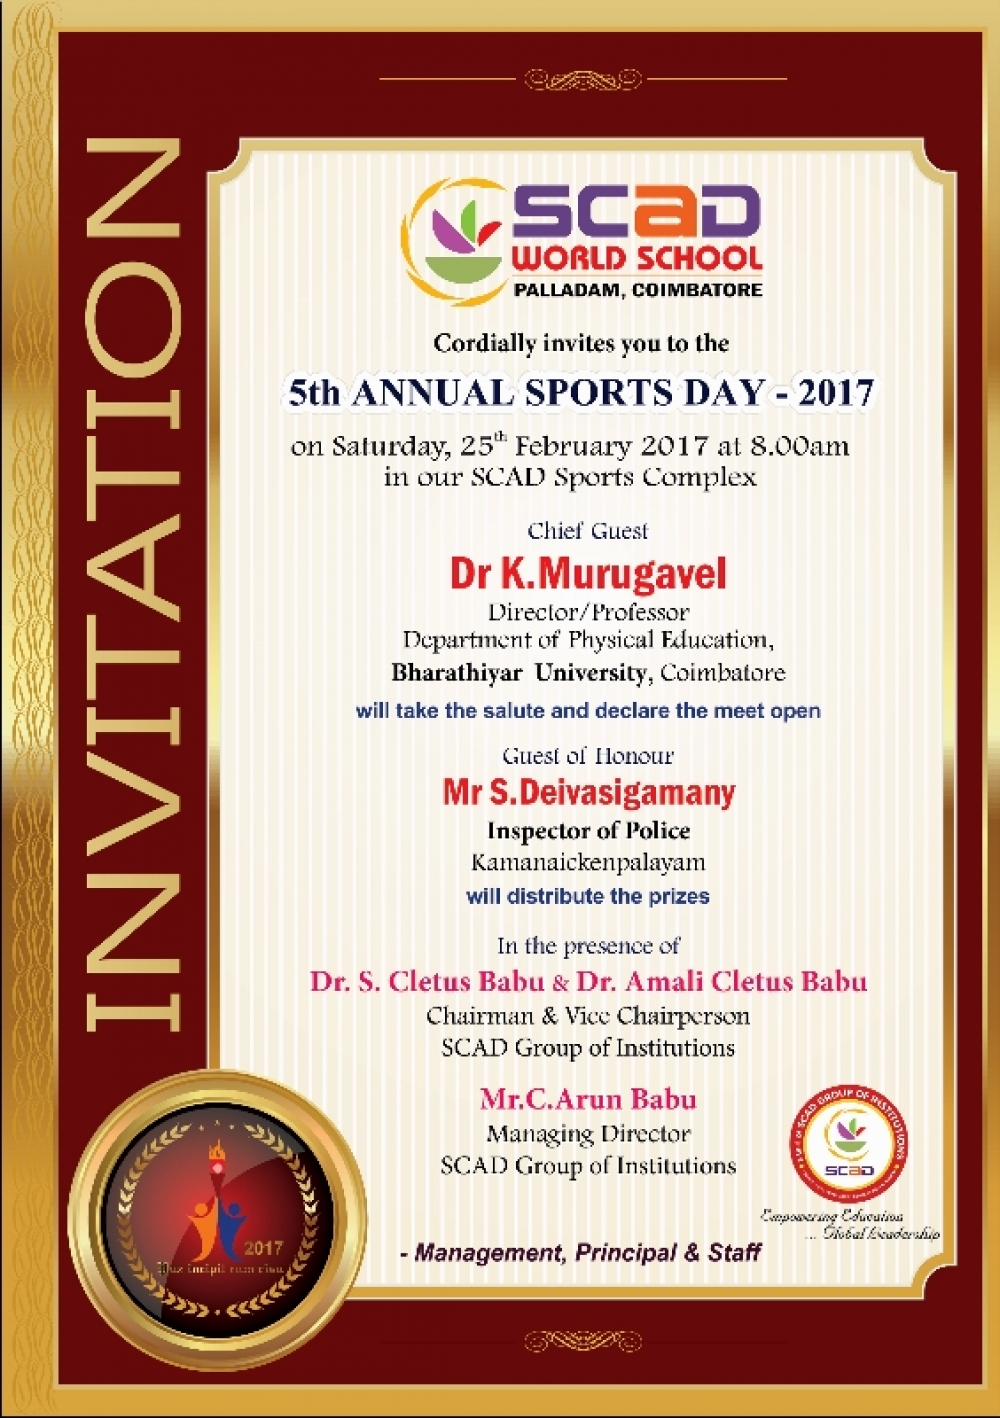 5th Annual Sports Day